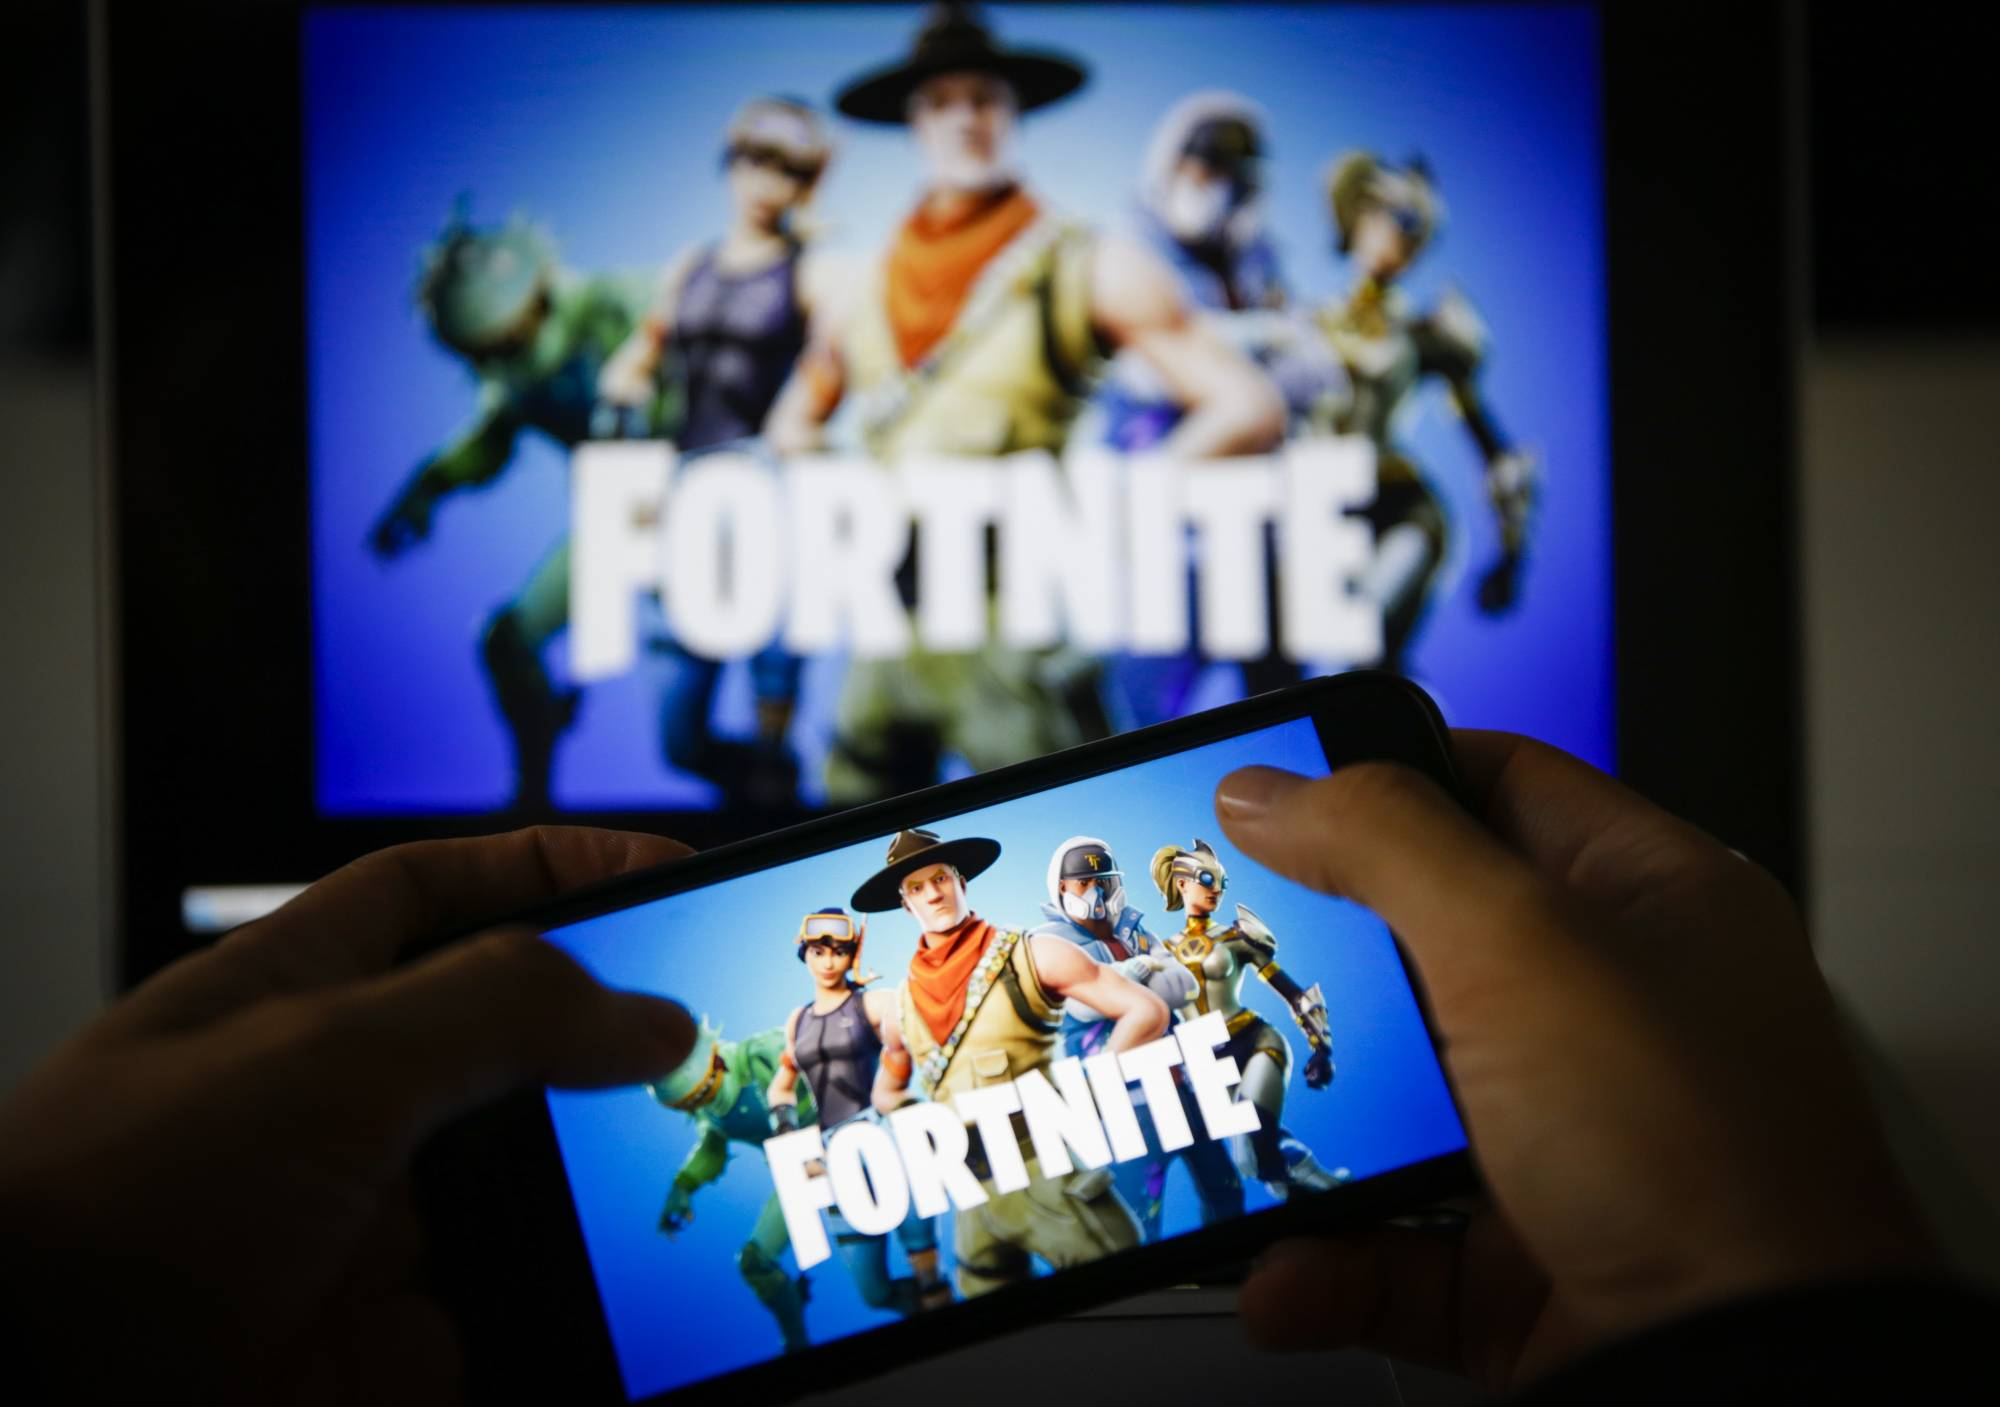 Checkpoint researchers discover big cybersecurity flaw In Fortnite.